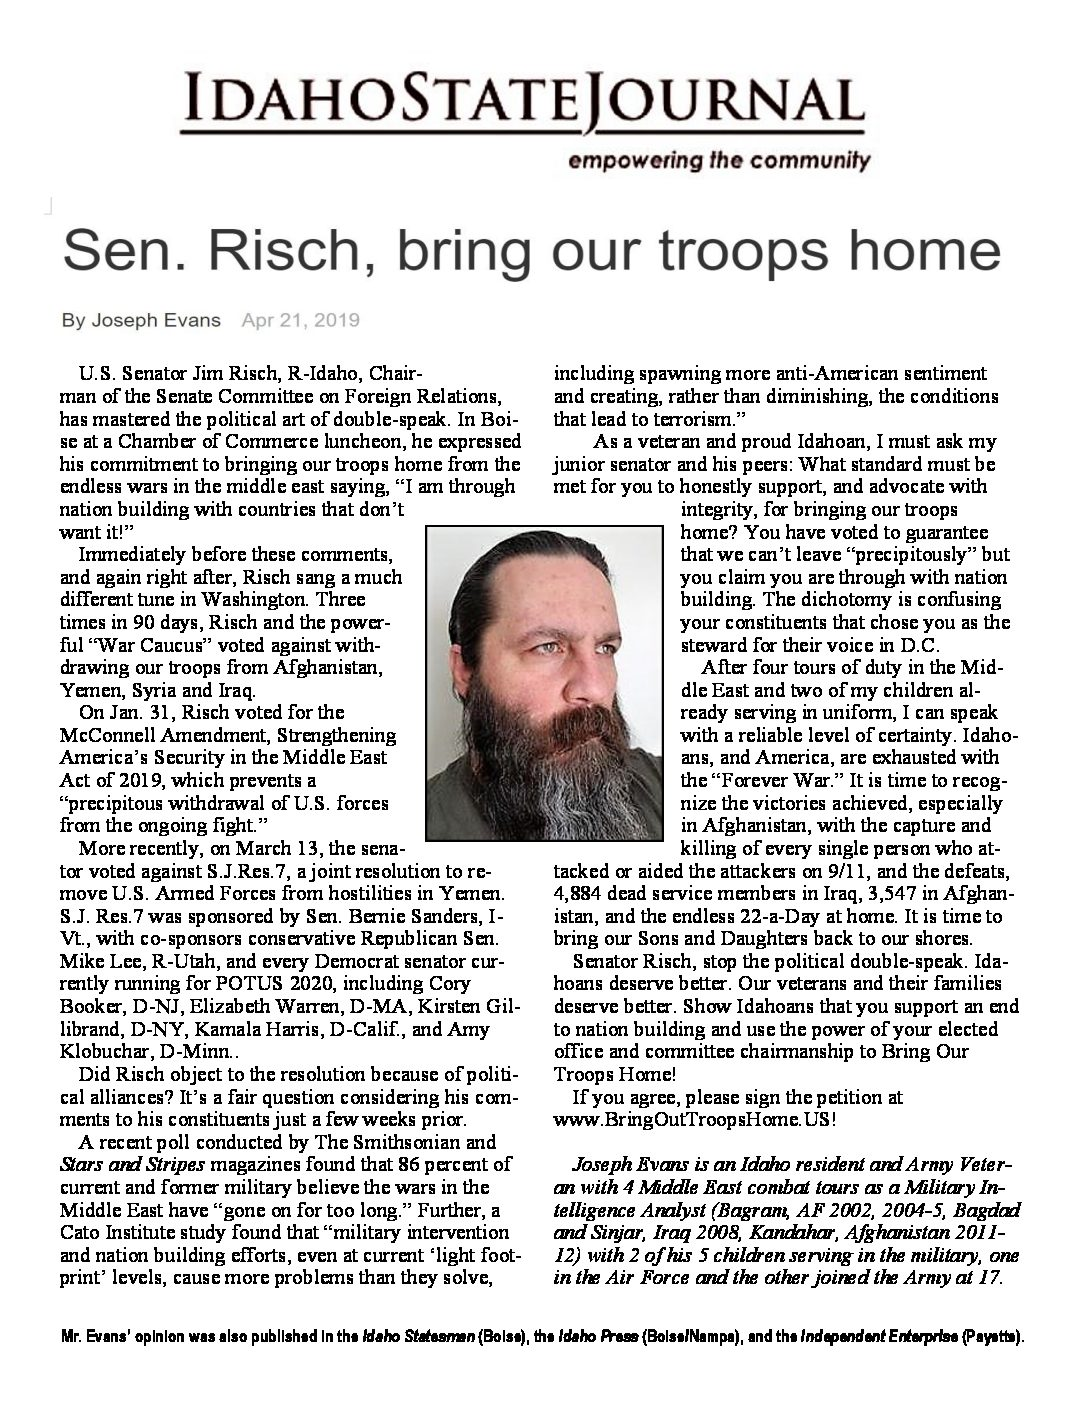 Idaho State Journal – Sen. Risch, bring our troops home